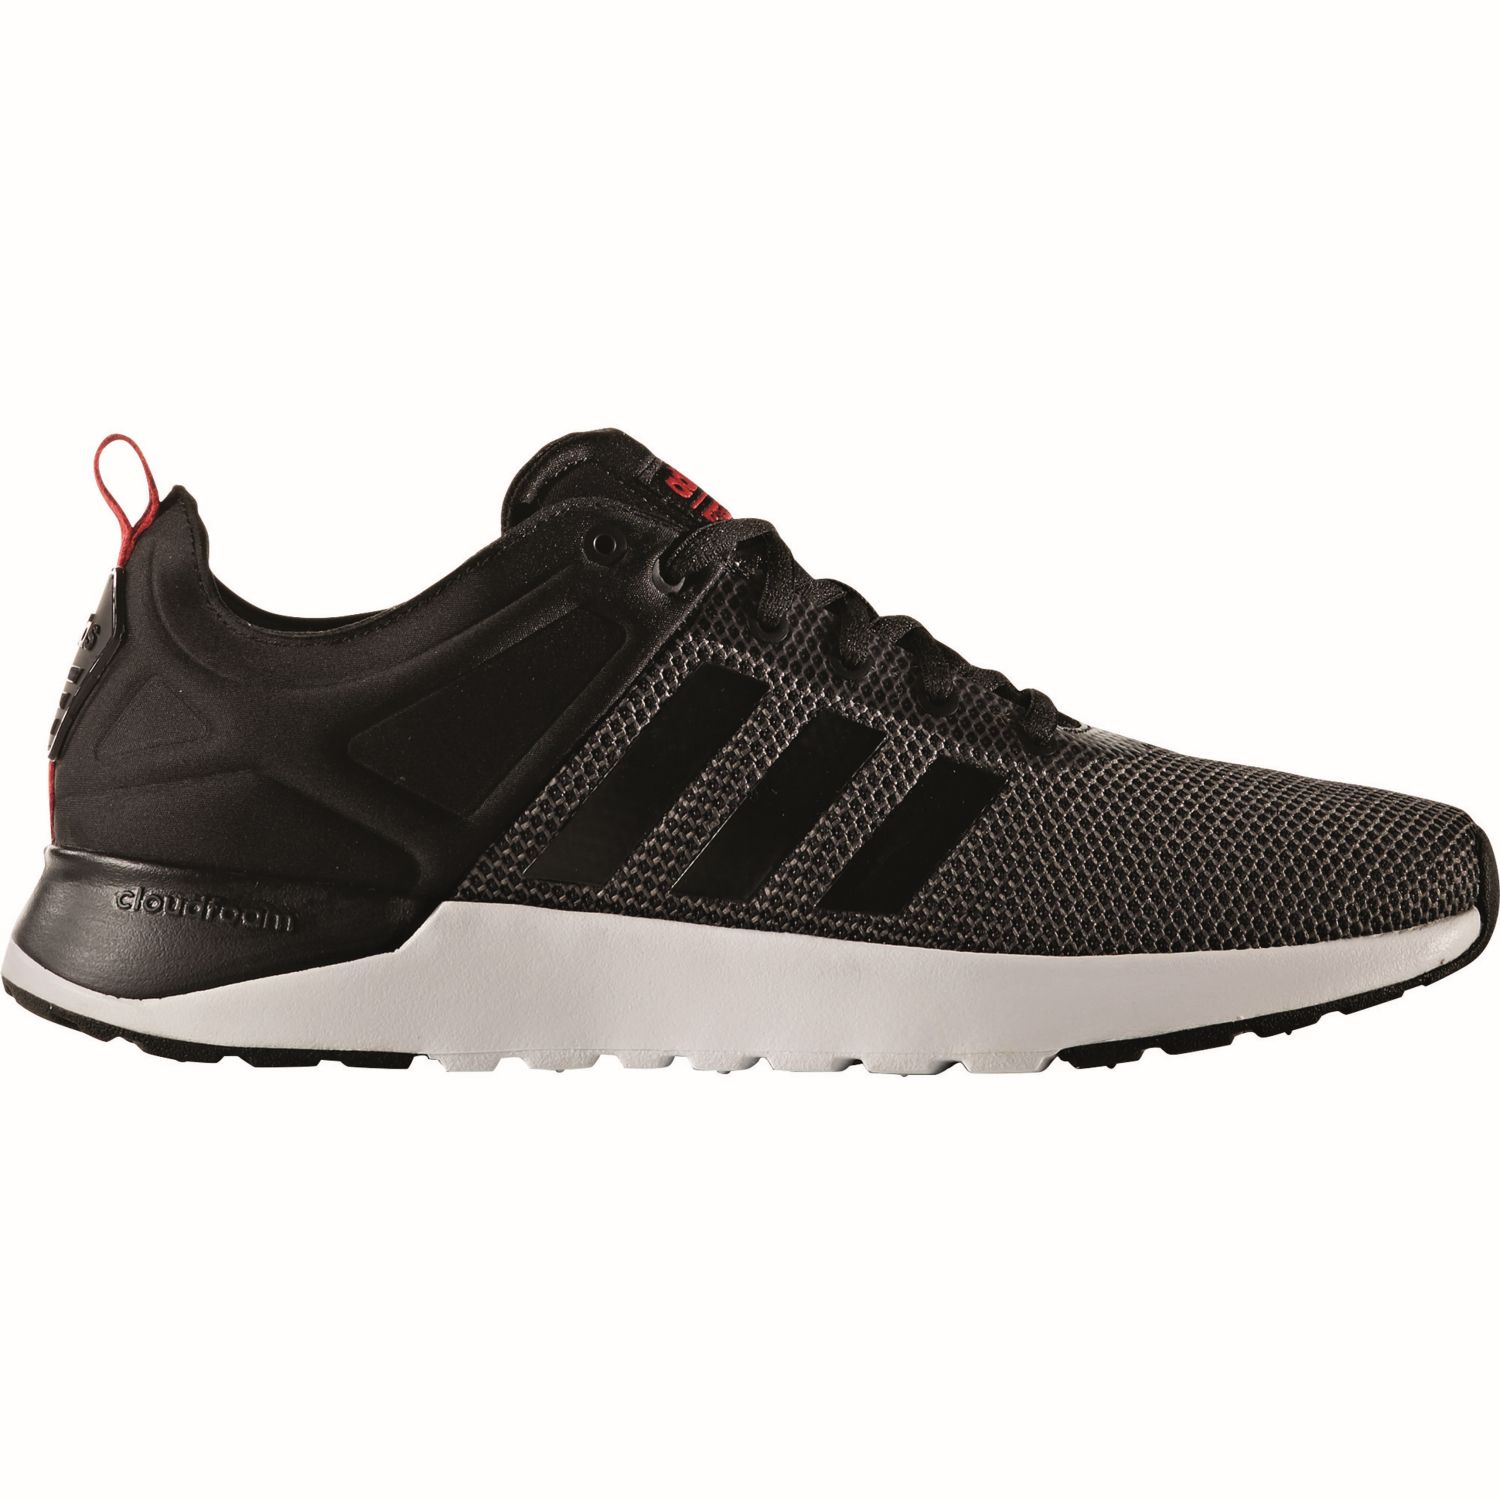 adidas neo cloudfoam swift racer sneaker schuh aw4163. Black Bedroom Furniture Sets. Home Design Ideas